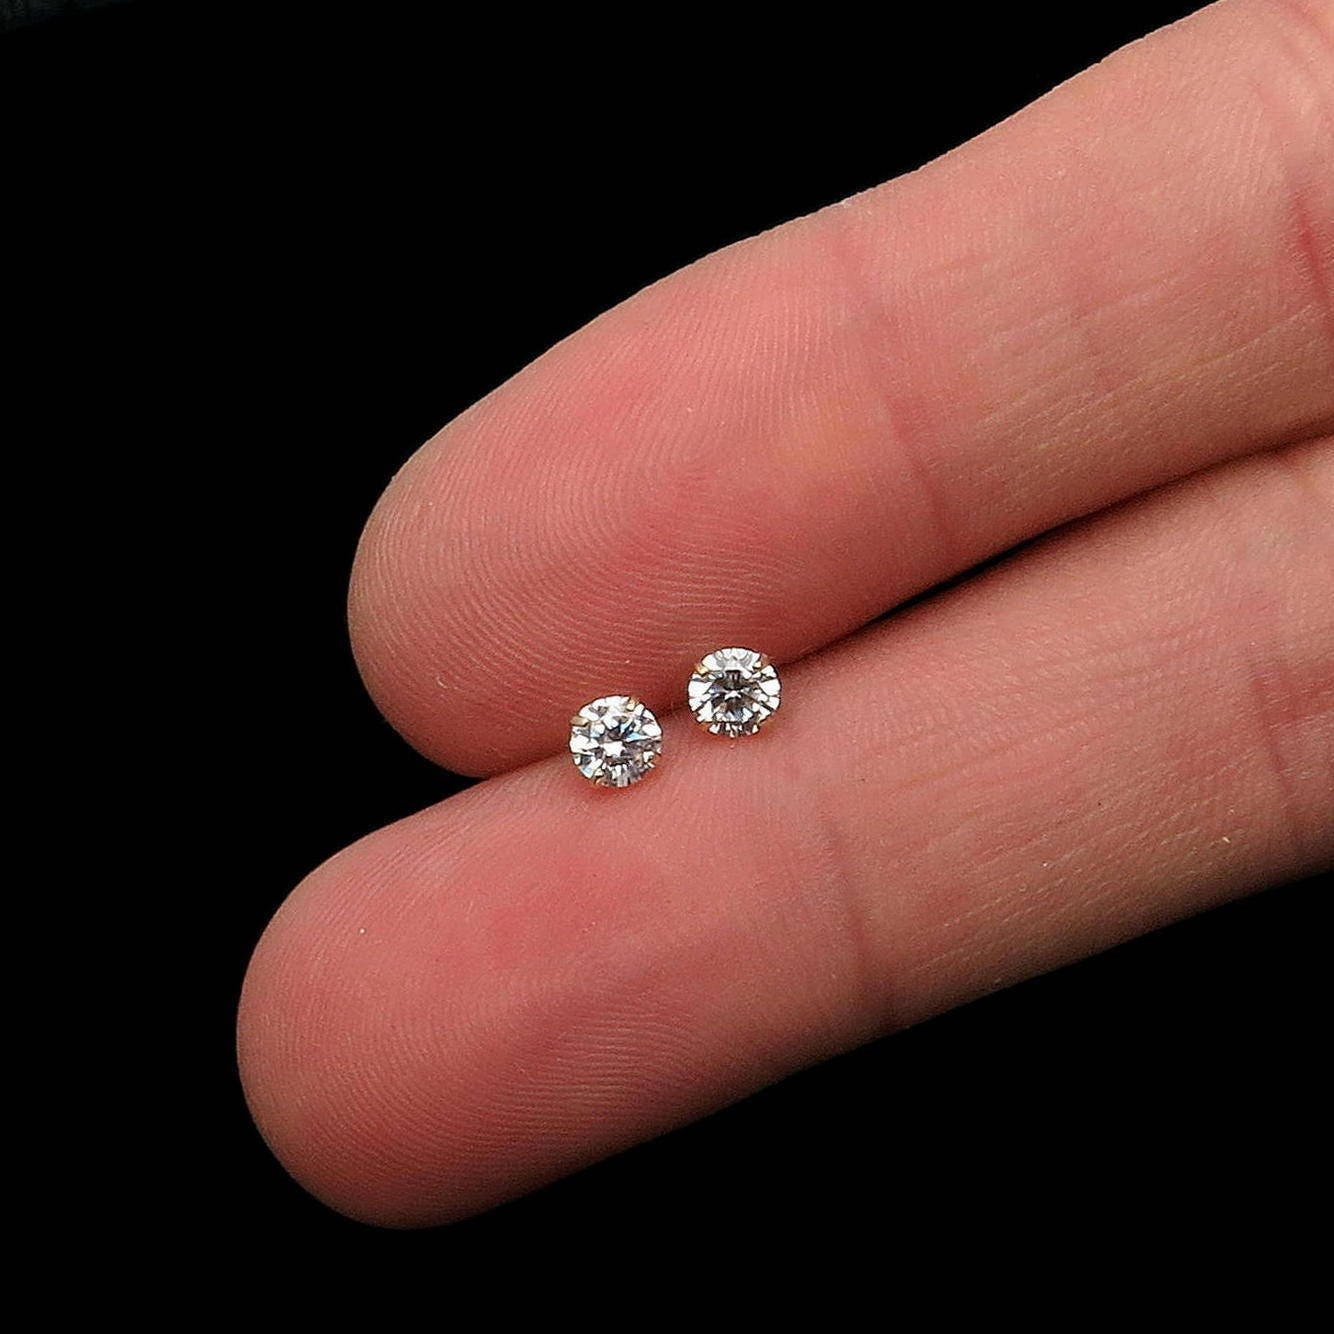 Round Solitaire Stud Earrings w/ VVS1 0.5 Carat Simulated Diamonds ...